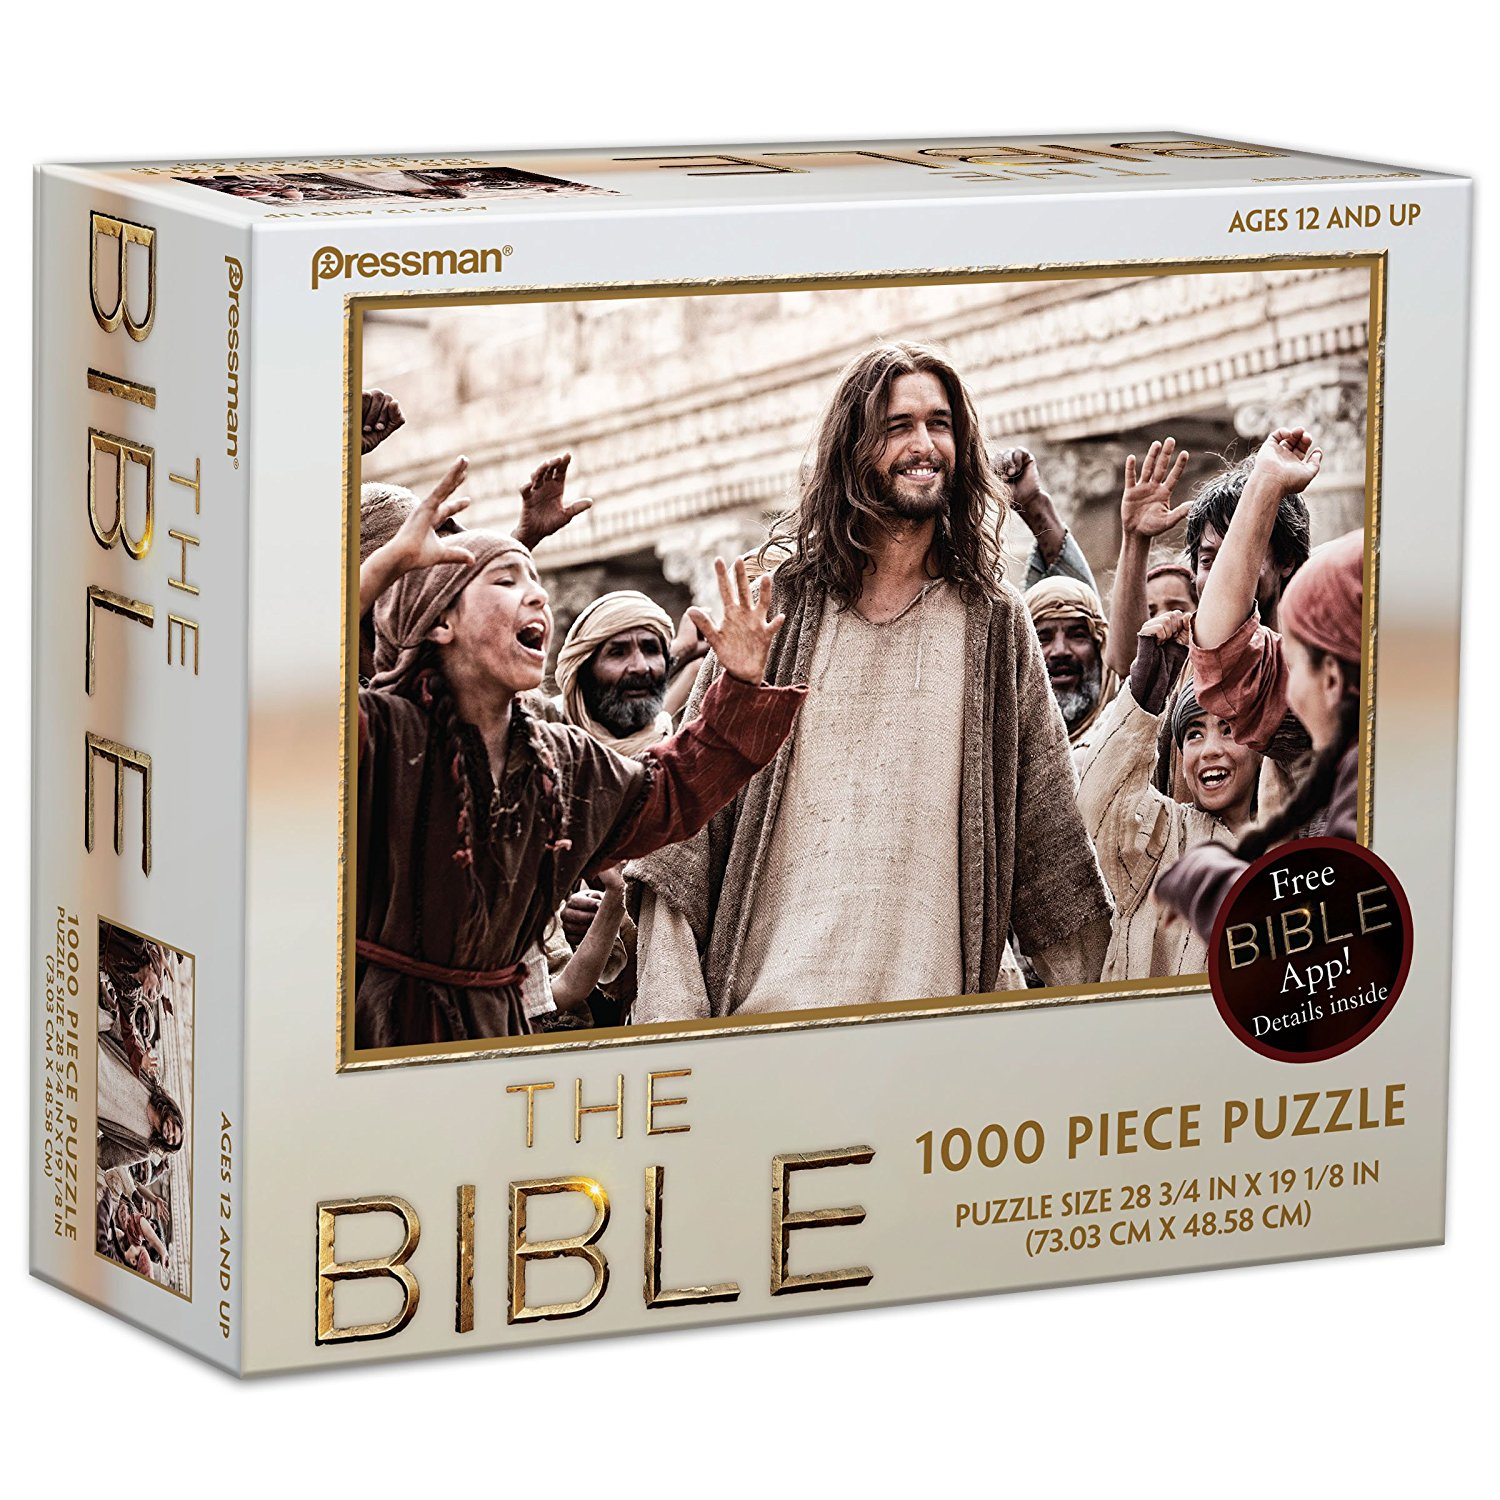 s The Bible Puzzle Style #1 (1000-Piece), 1,000 Piece Puzzle By Pressman Toy by